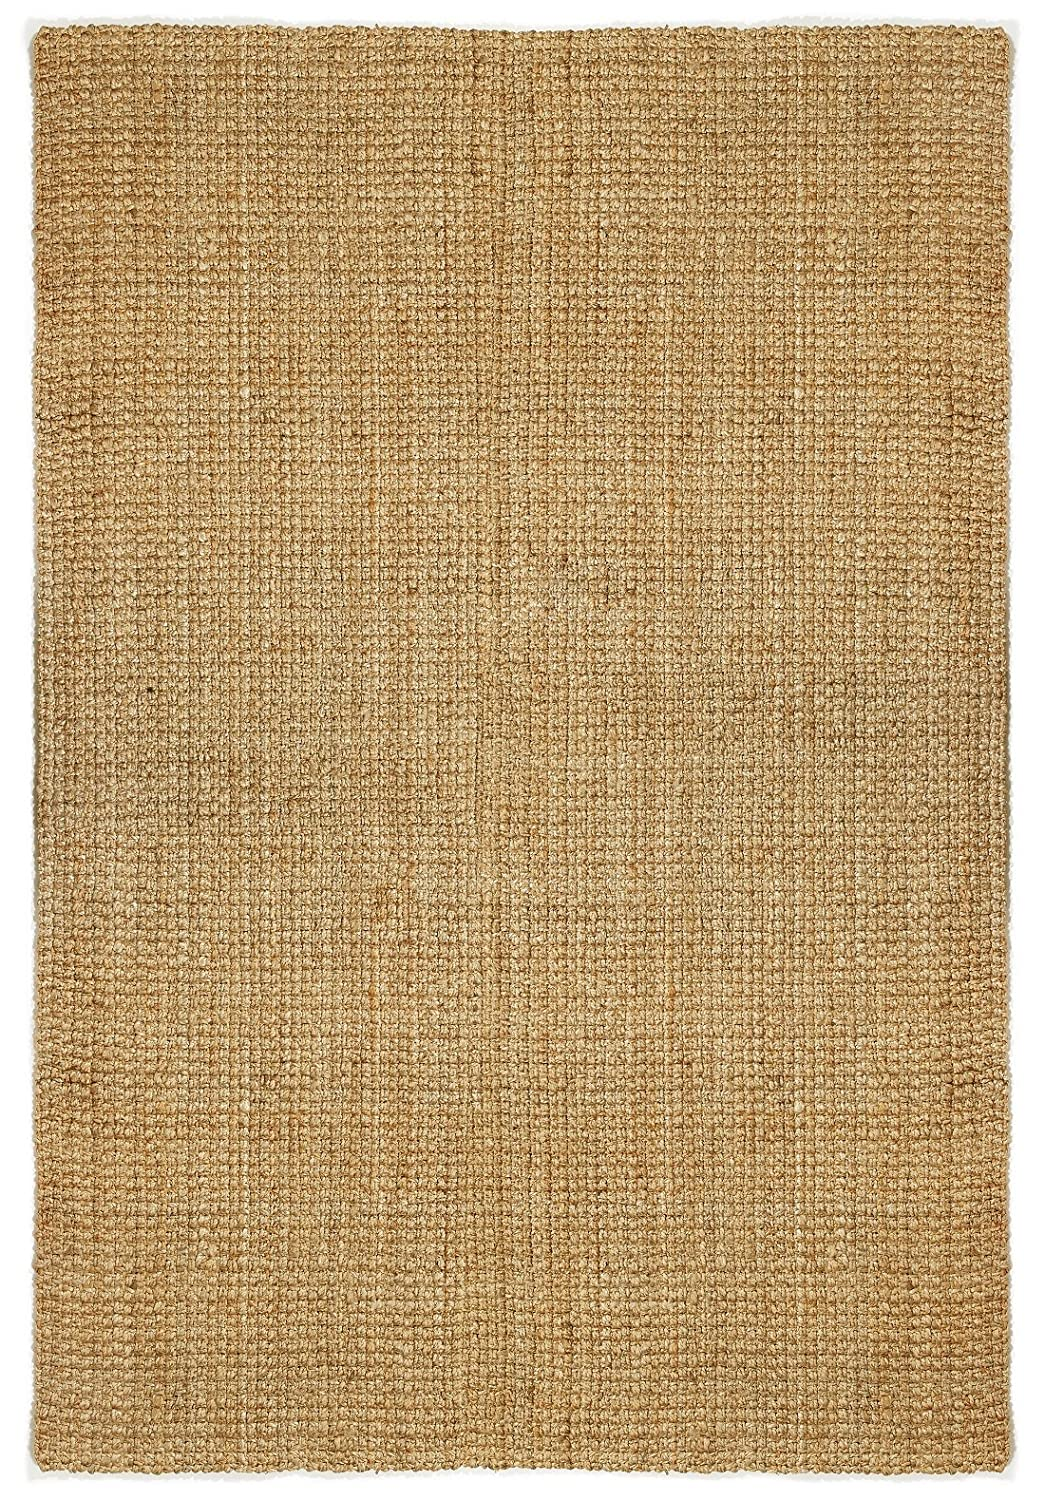 Amazon.com: Fab Habitat Essentials: Ranier Weave Jute Rug - Jute (6x9 Rectangular): Home & Kitchen